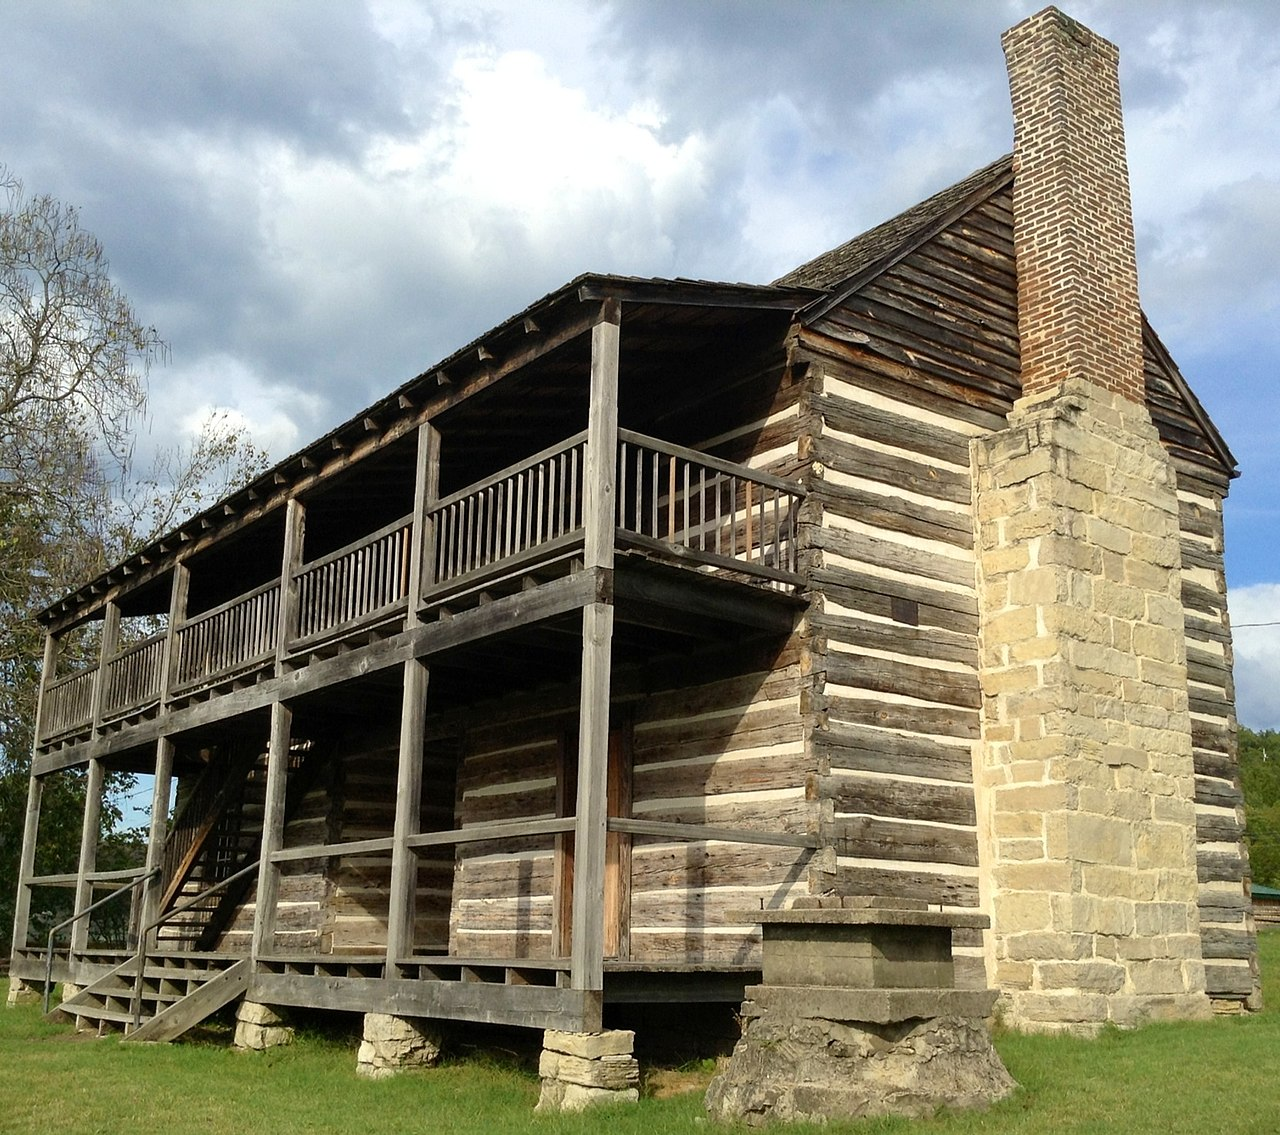 "The Jacob Wolf House is one of the more significant buildings in Arkansas. It was Izard County's first seat of government and the country's only two-story ""dog-trot"" public structure still standing."